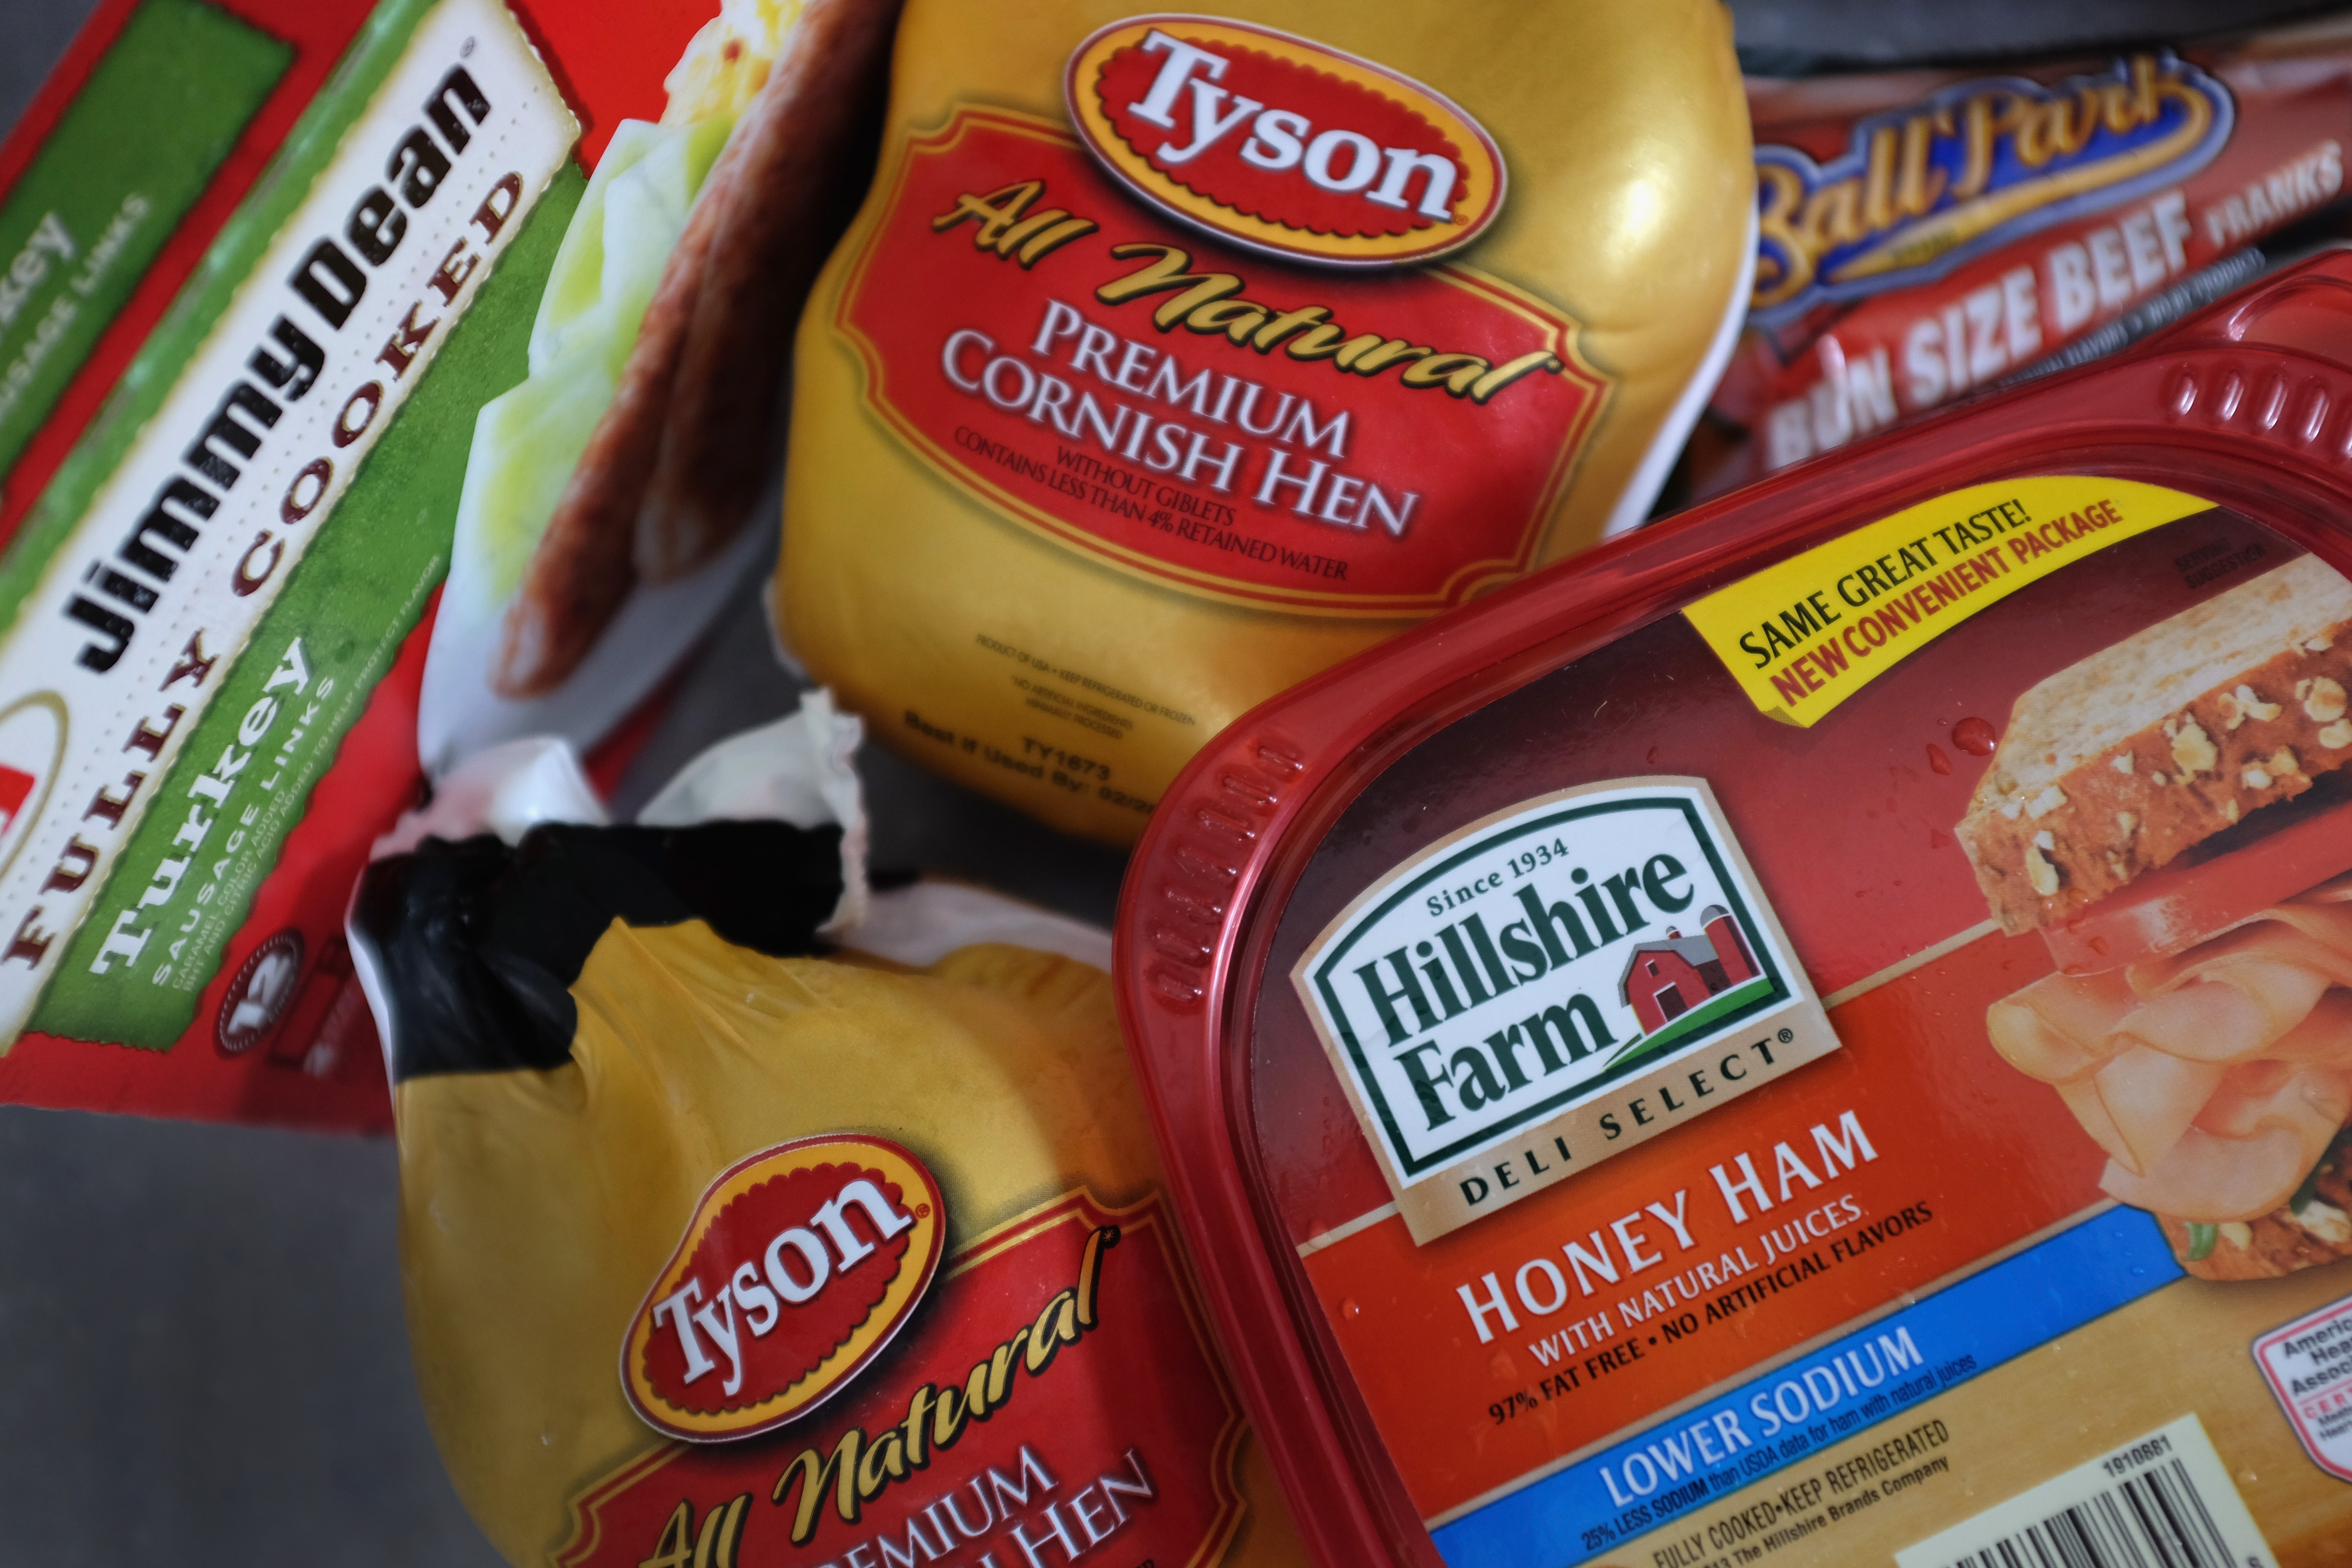 Tyson Foods and Hillshire Brands products